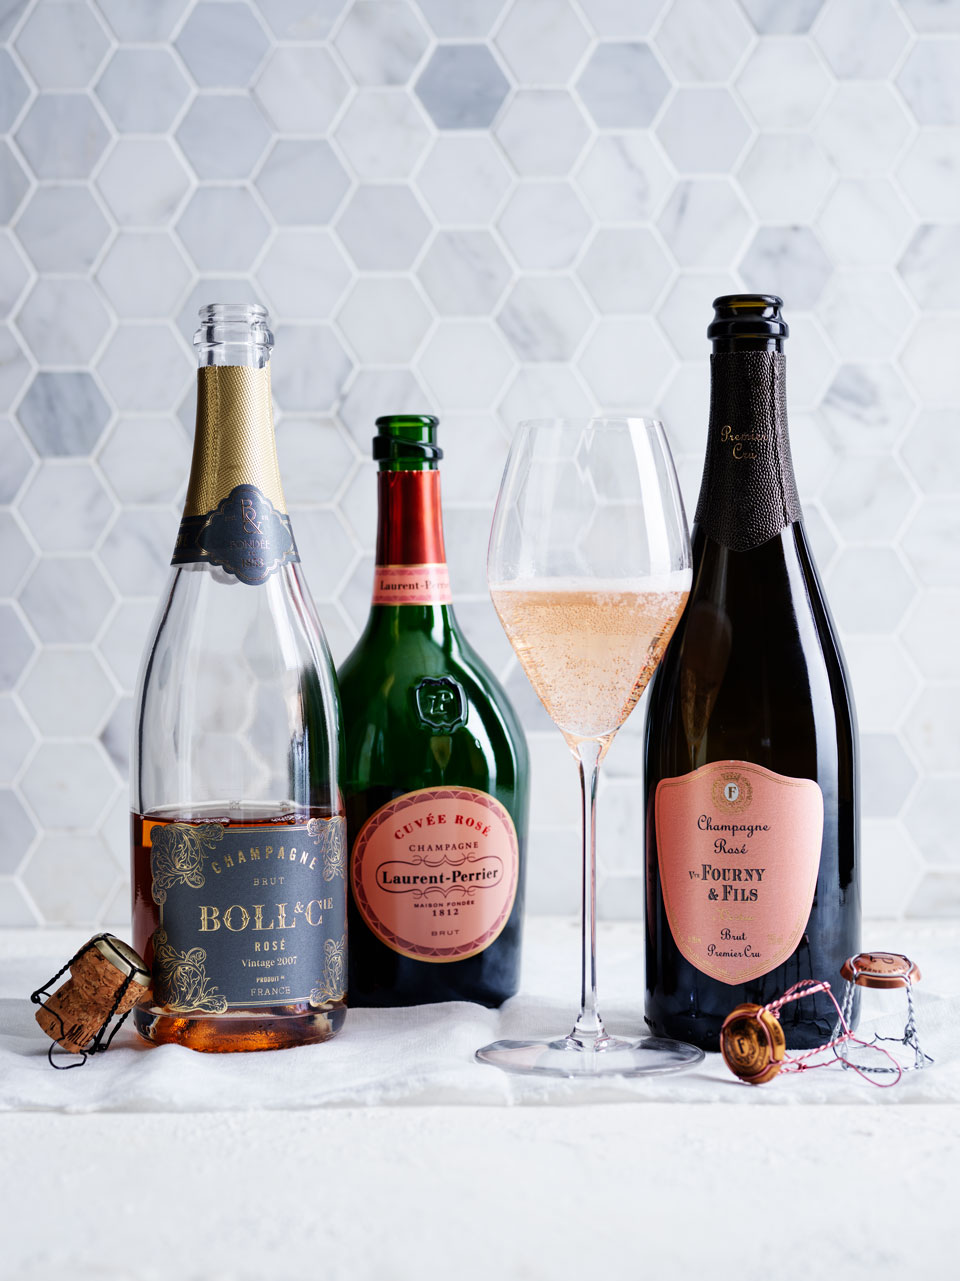 The Veuve Fourny & Fils was one of four wines to top  the tasting with  96 points.